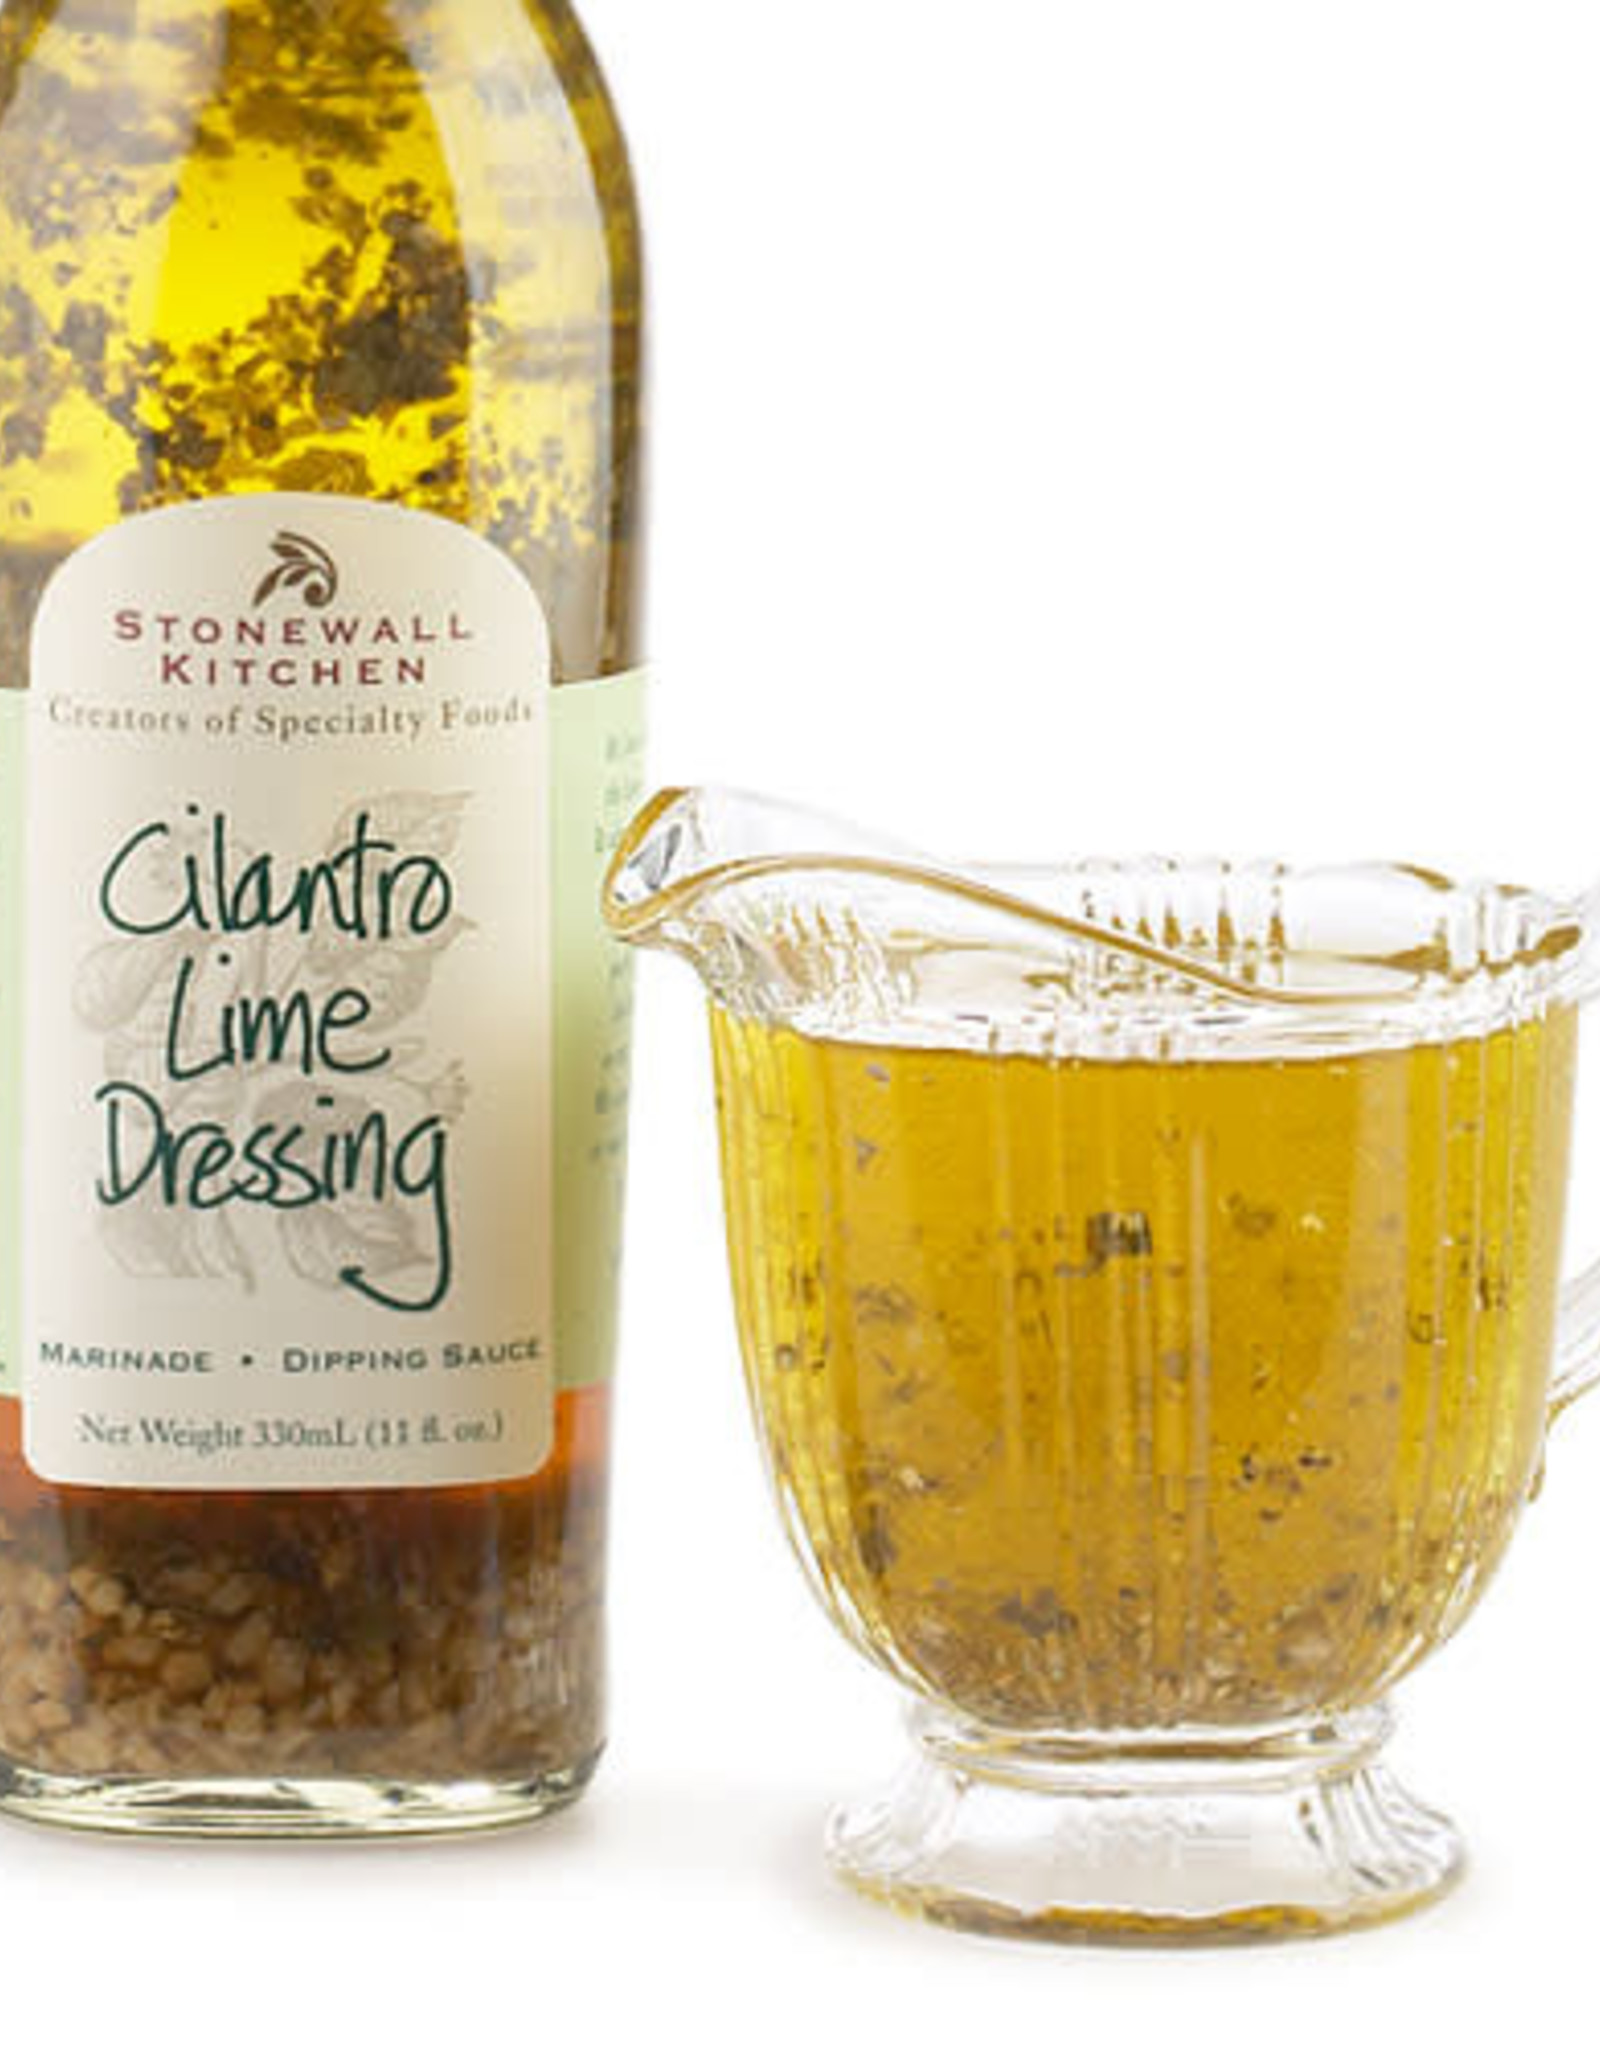 Stonewall Kitchen Cilantro Lime Dressing